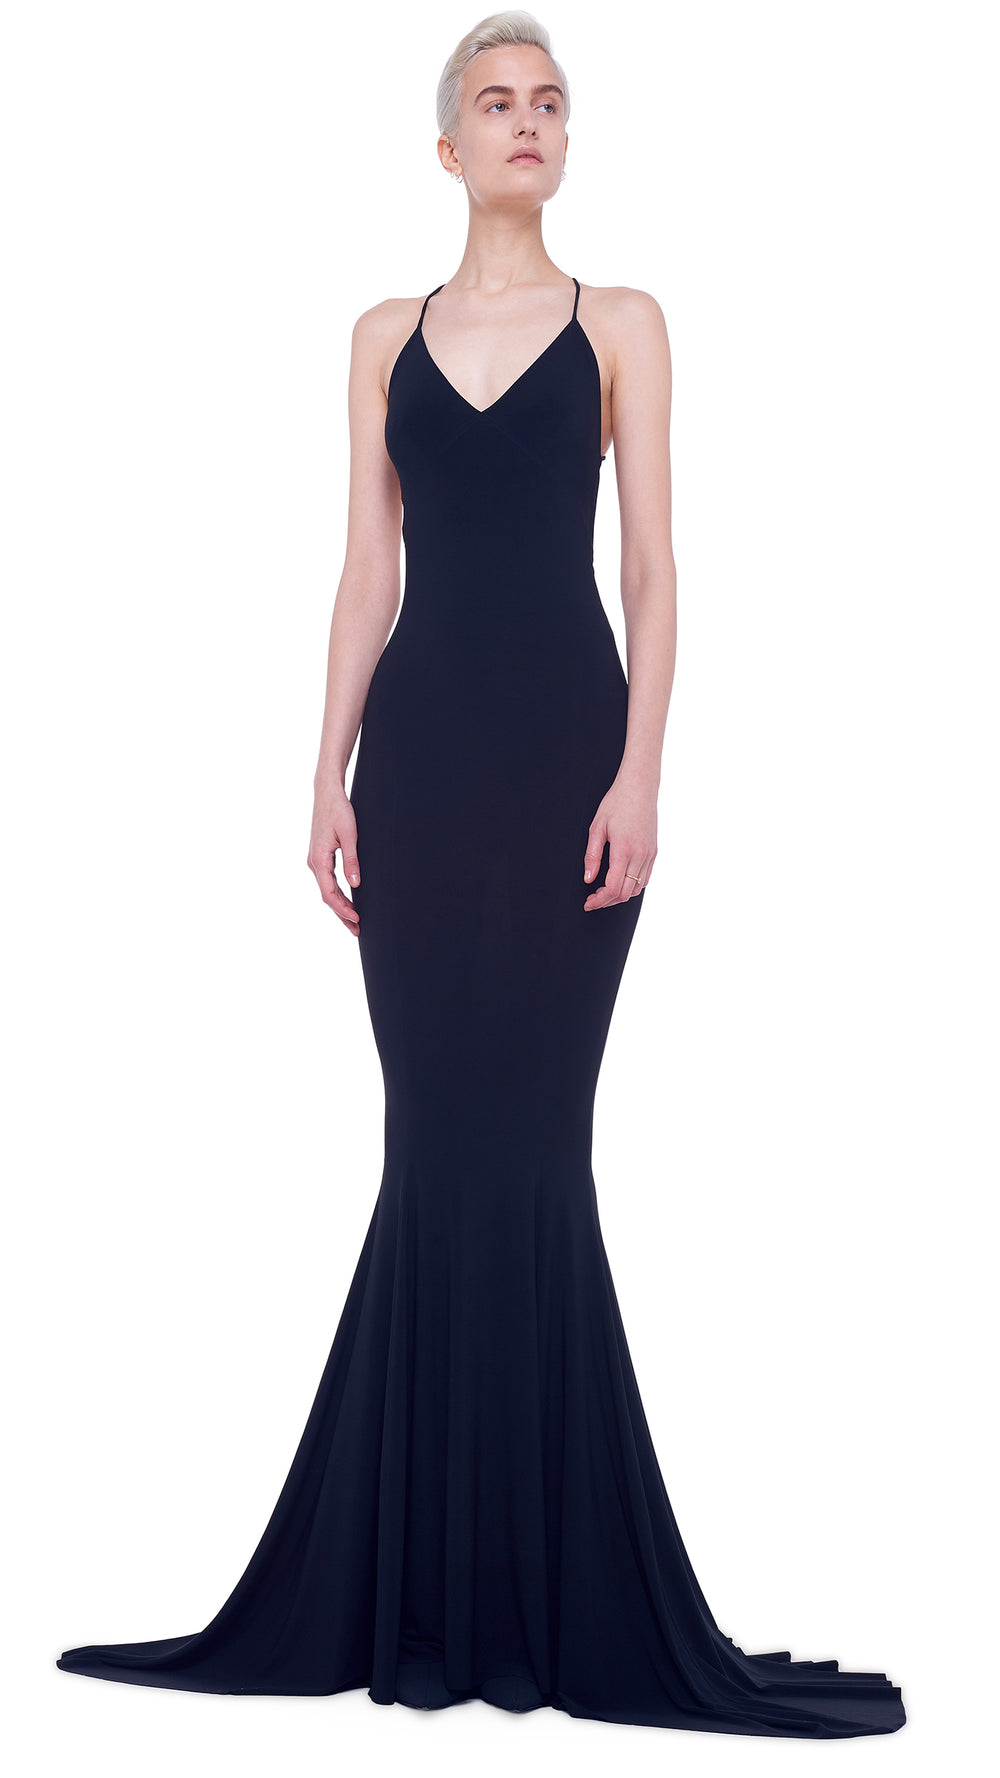 LOW BACK SLIP MERMAID FISHTAIL GOWN - 1